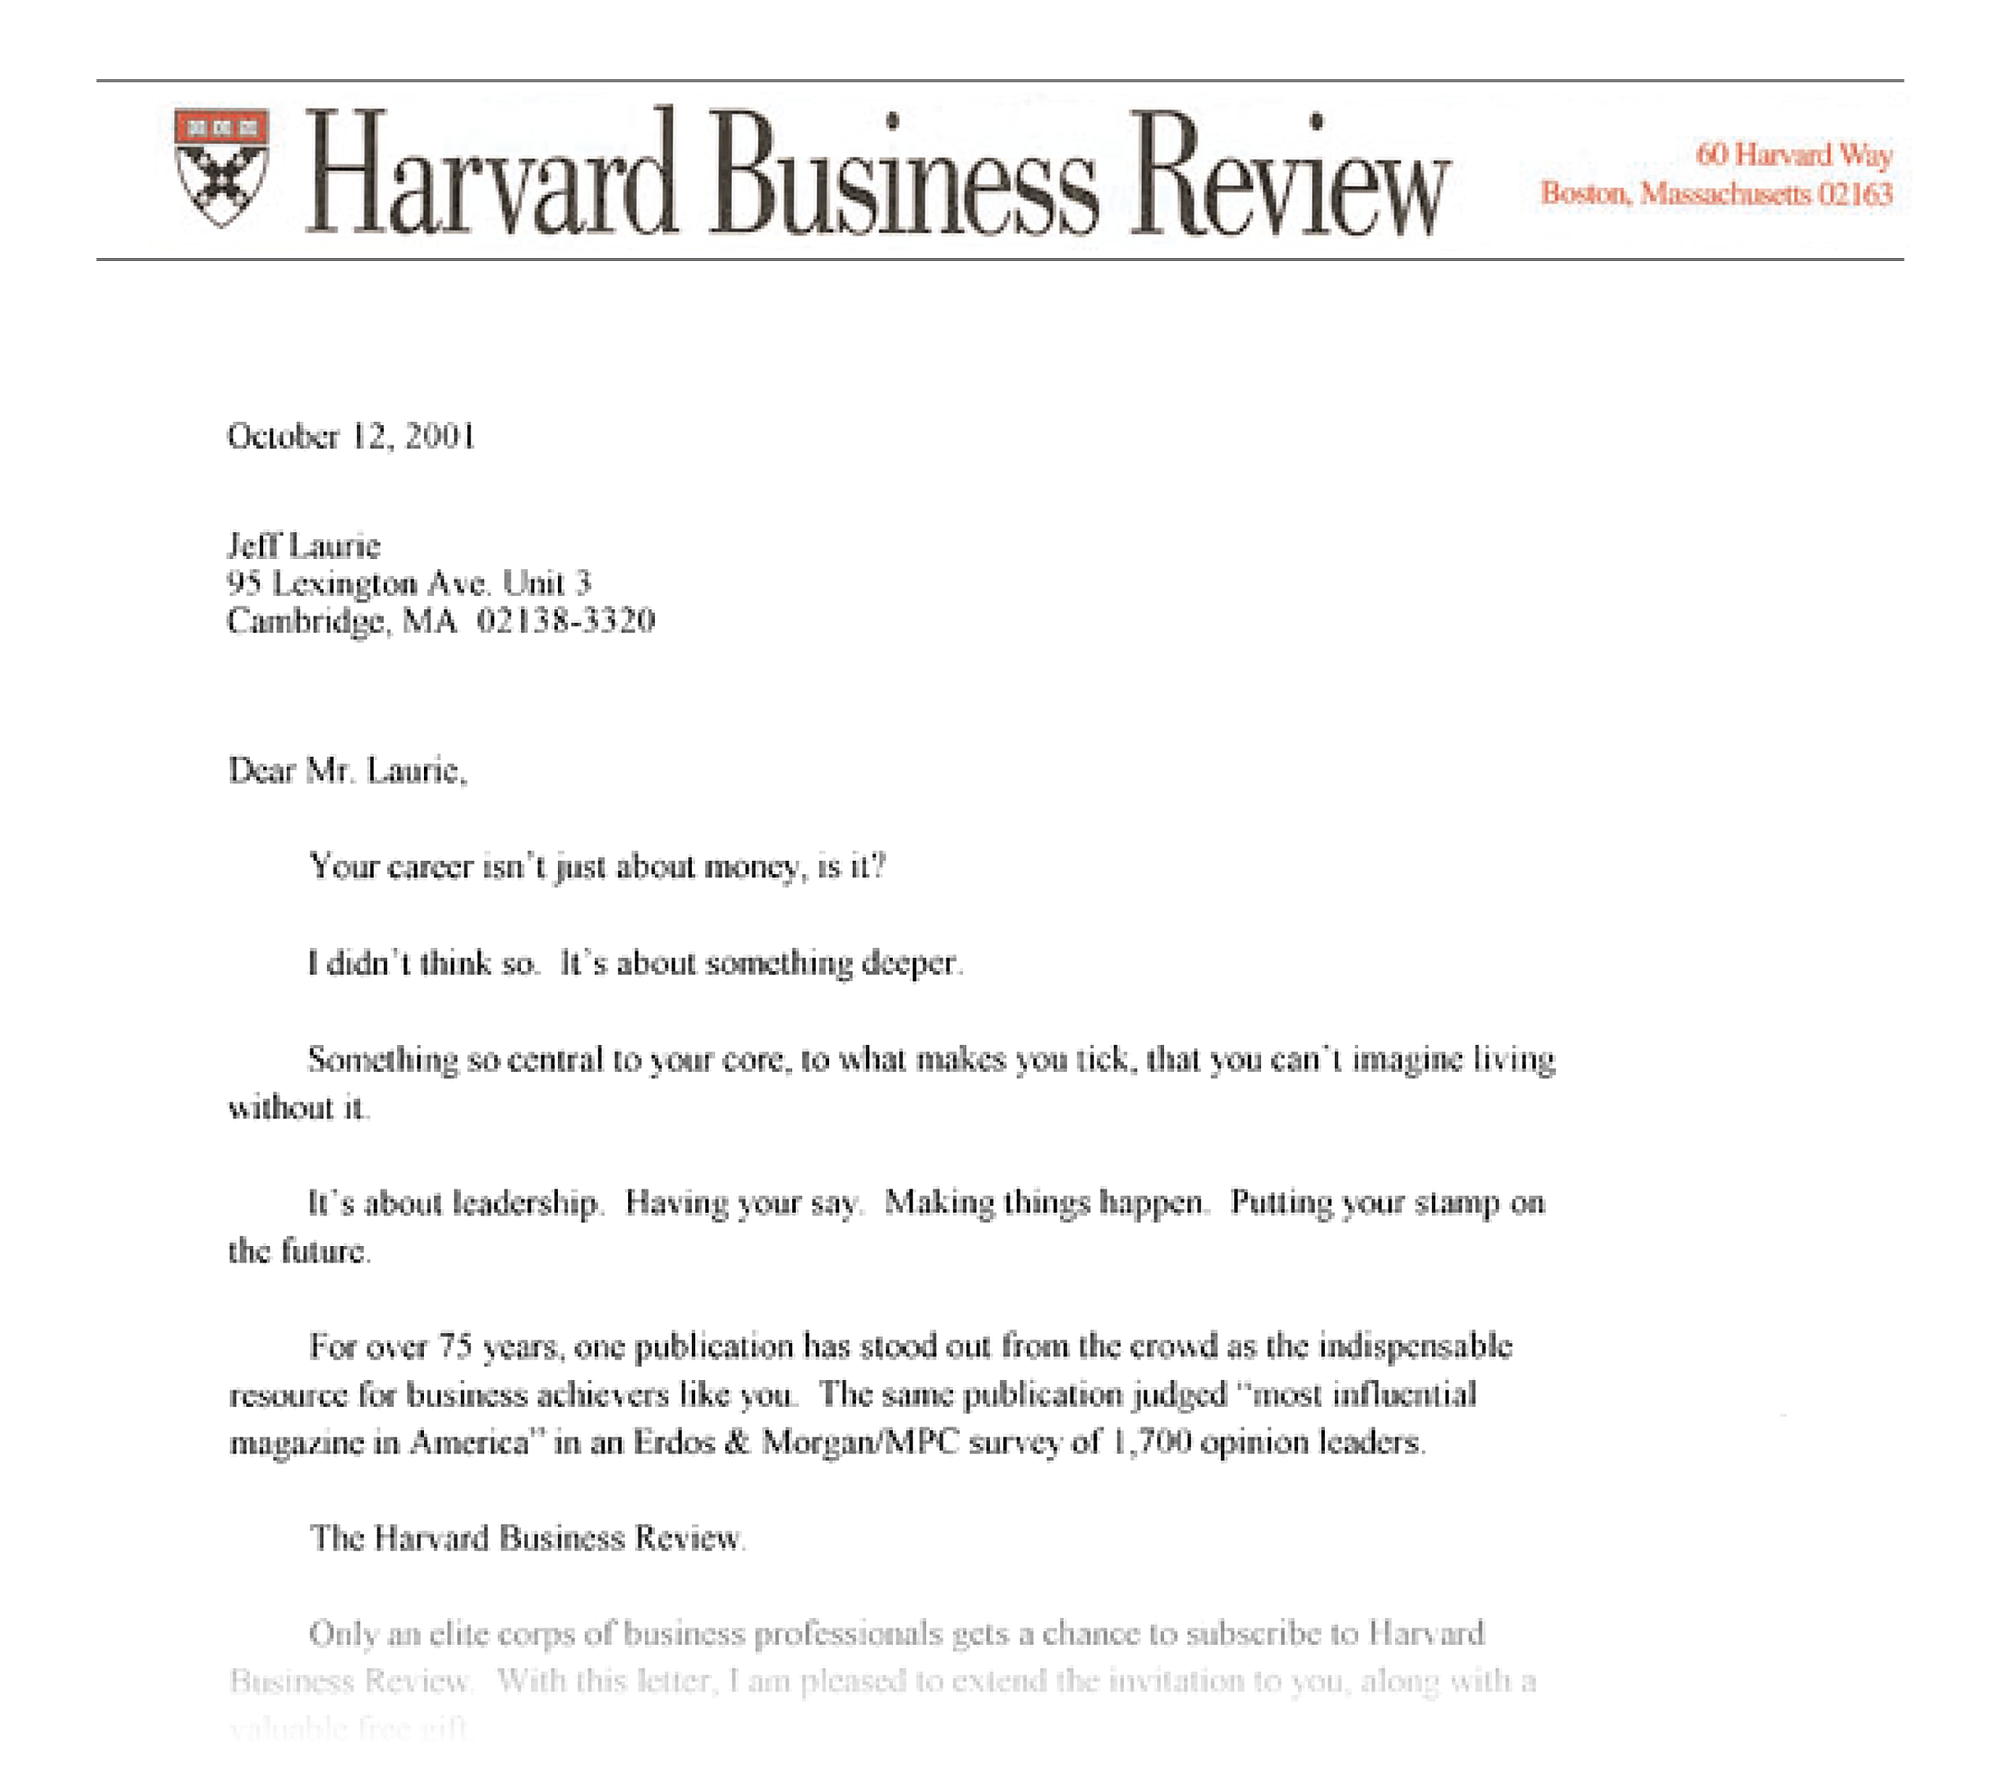 """Harvard Business Review's classic sales letter, """"Your career isn't just about money, is it?"""